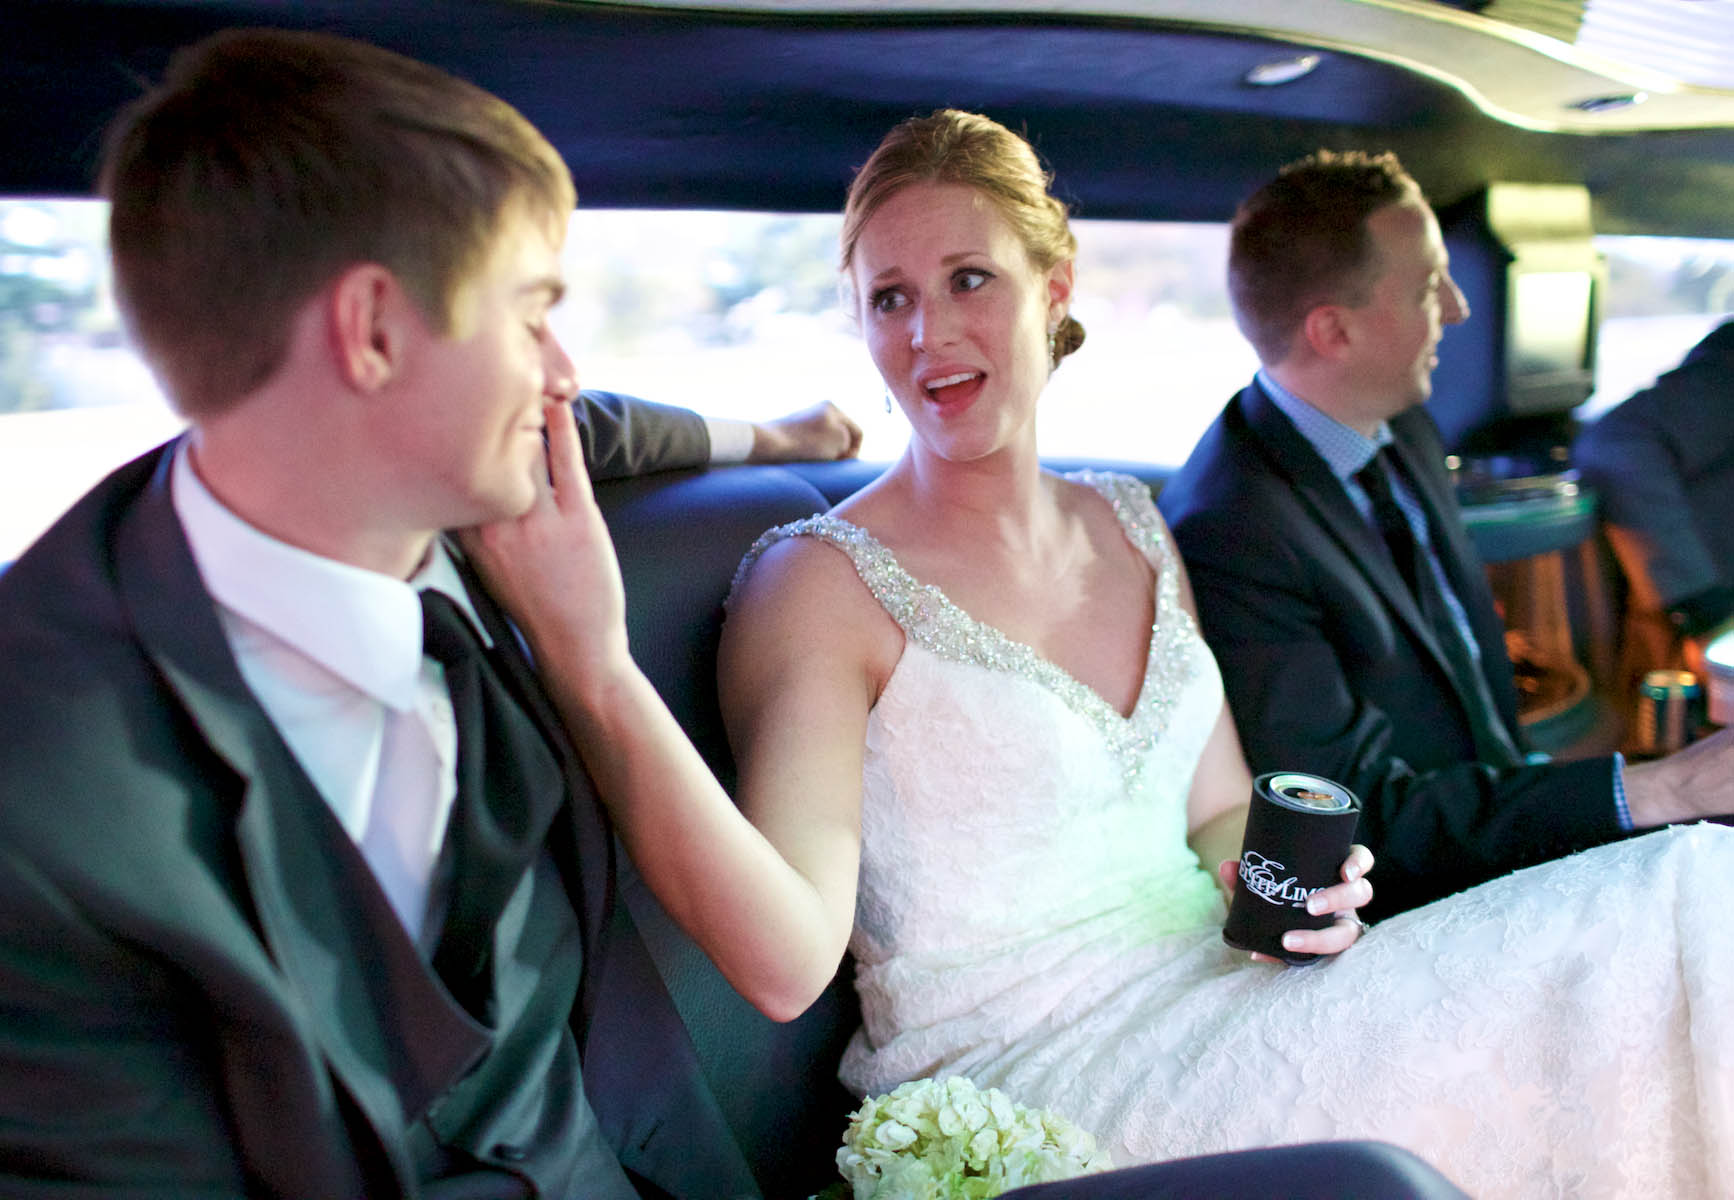 Jaclyn sings to Scott as the wedding party enjoys the limousine on the trip to the iHotel in Champaign for the wedding reception. Wedding photography by Tiffany & Steve of Warmowski Photography.